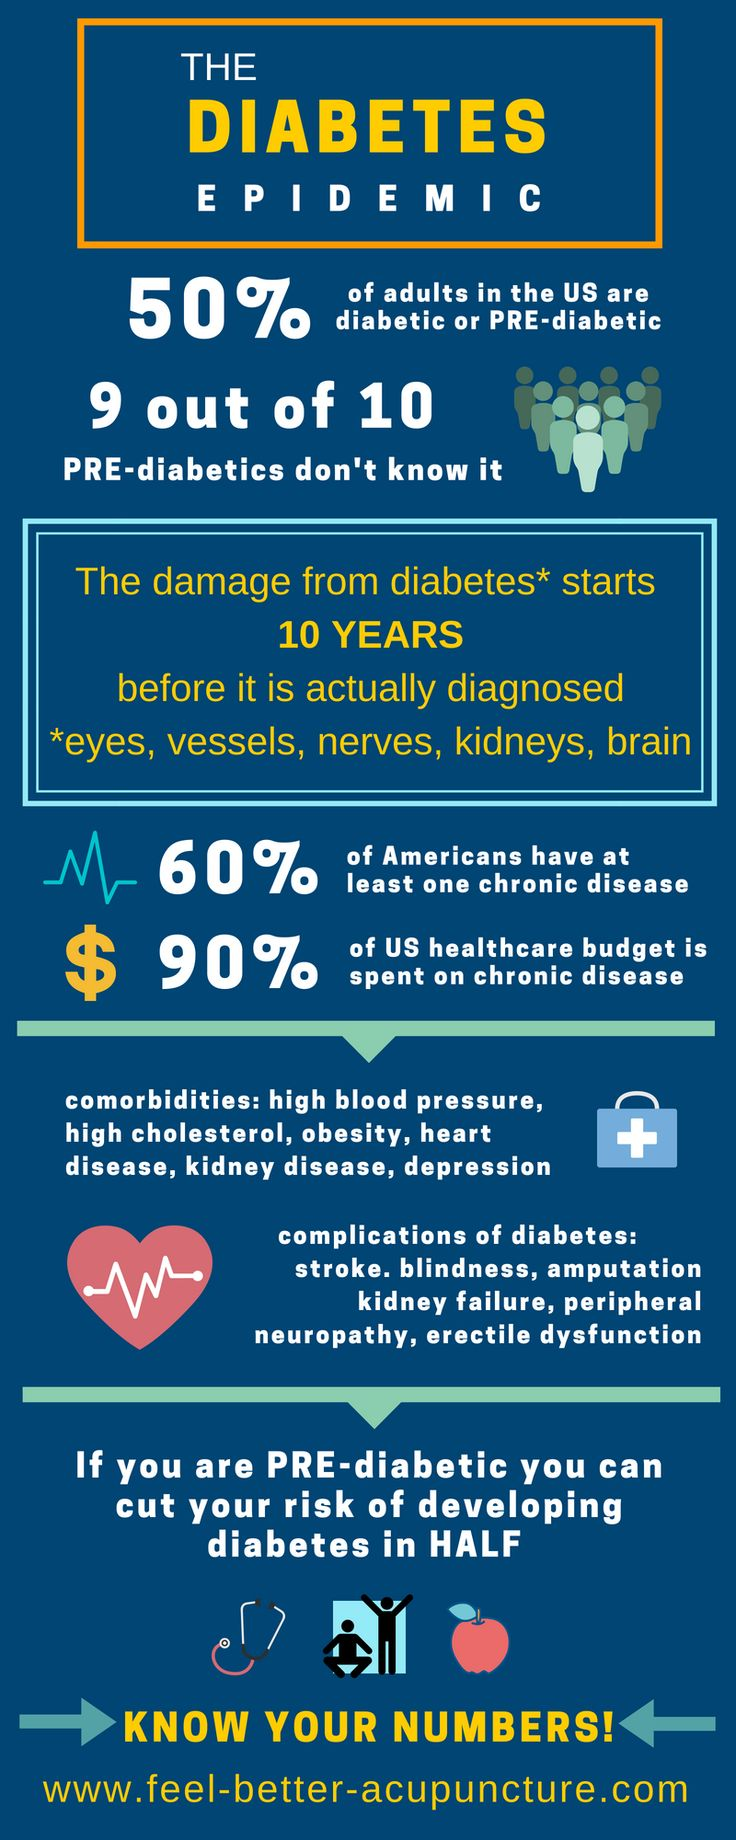 Chronic disease is bankrupting our country. For the sake